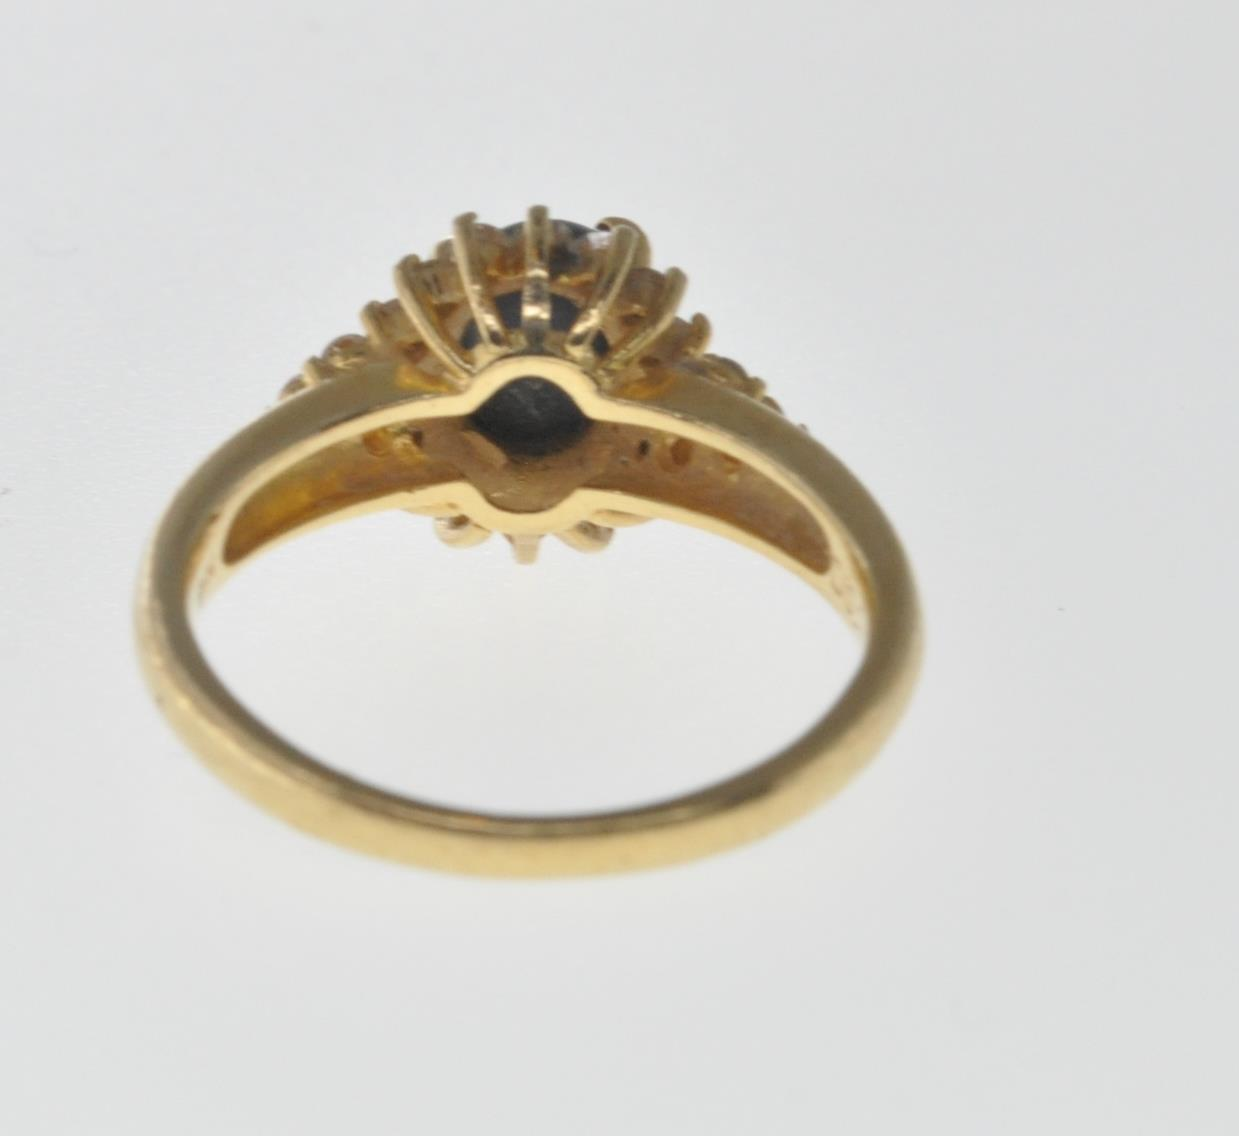 18CT GOLD BLACK OPAL AND DIAMOND RING - Image 5 of 7